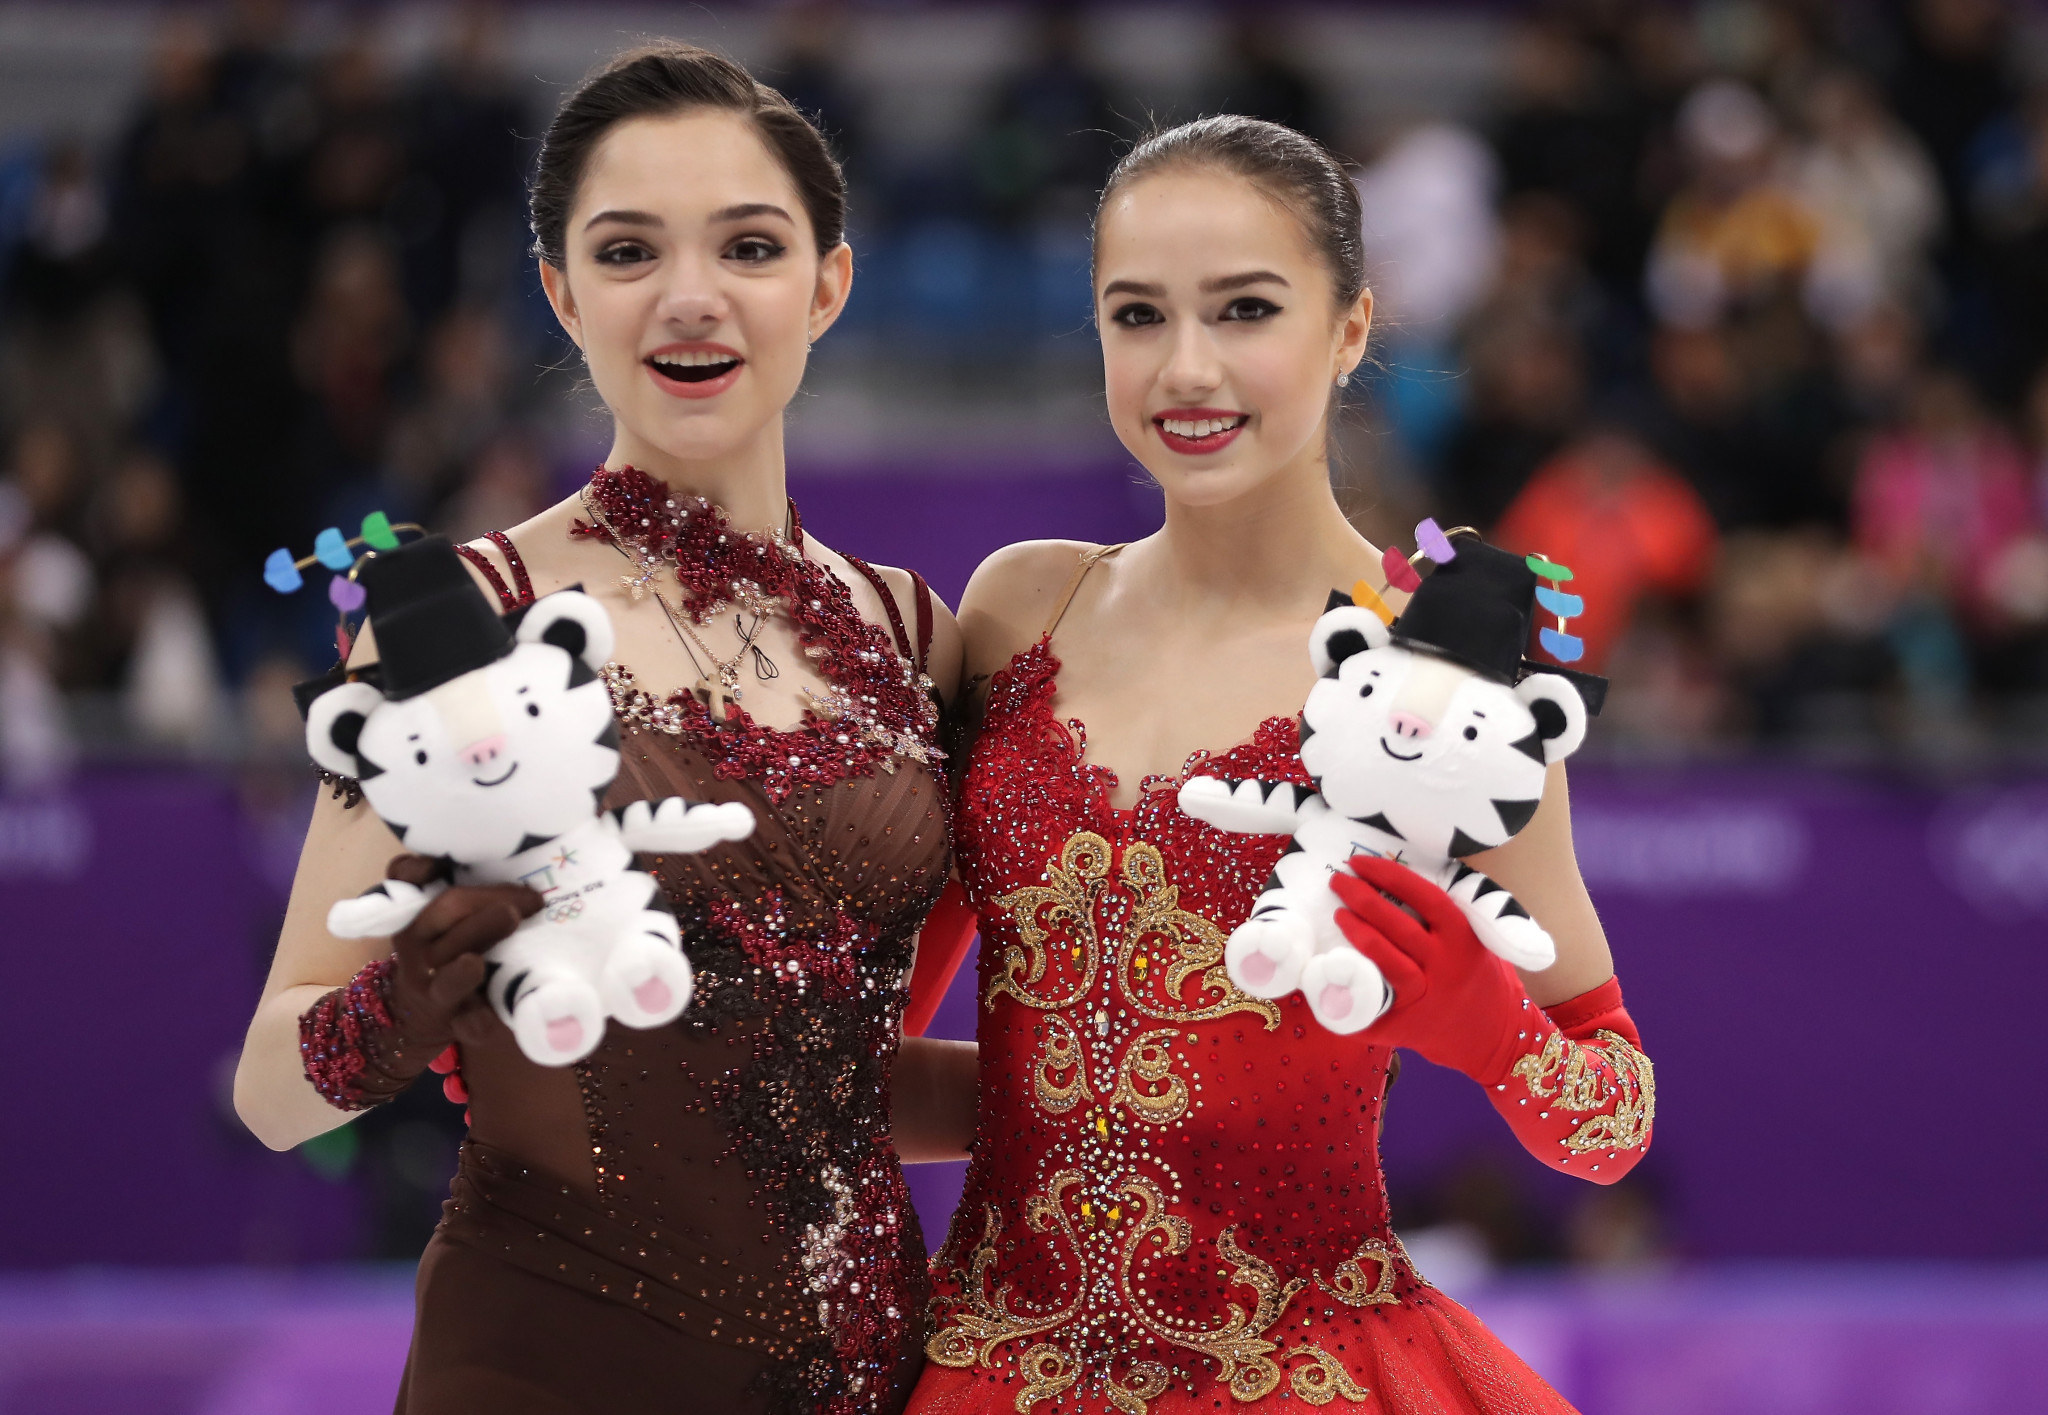 Evgenia Medvedeva, left, and Alina Zagitova, right, won silver and gold, respectively, at Pyeongchang 2018 ©Getty Images